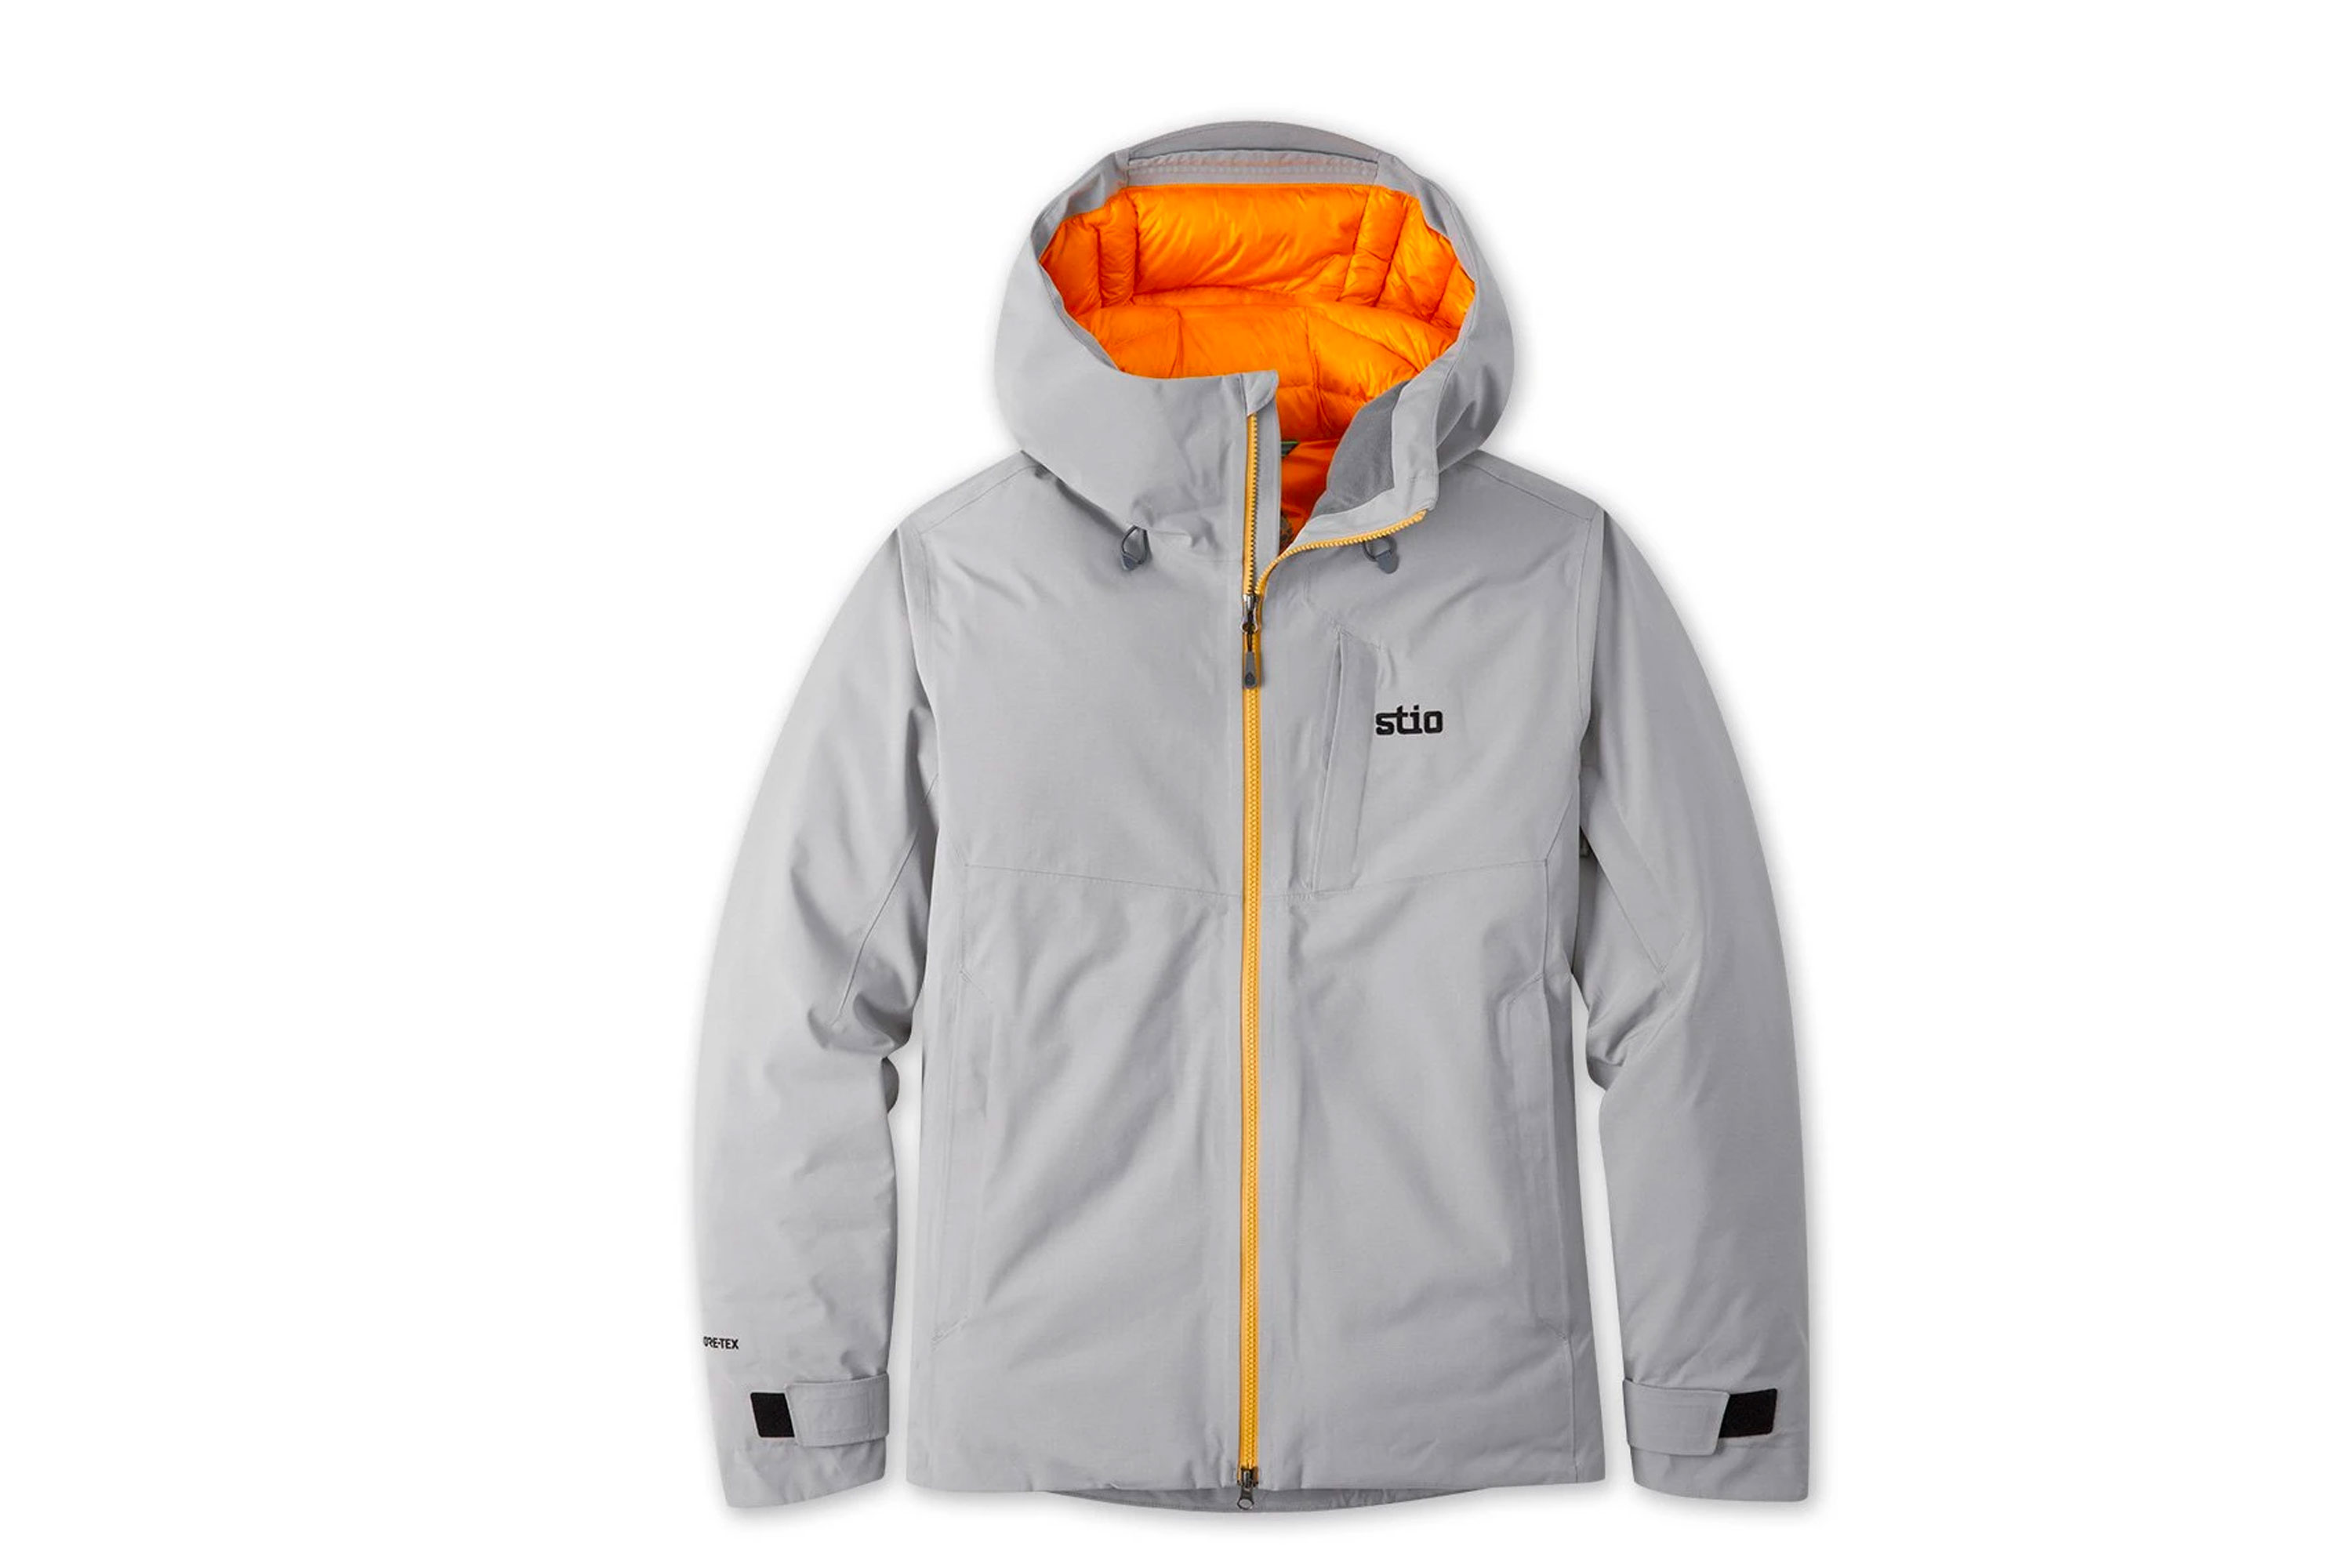 mens ski jacket stio shot 7